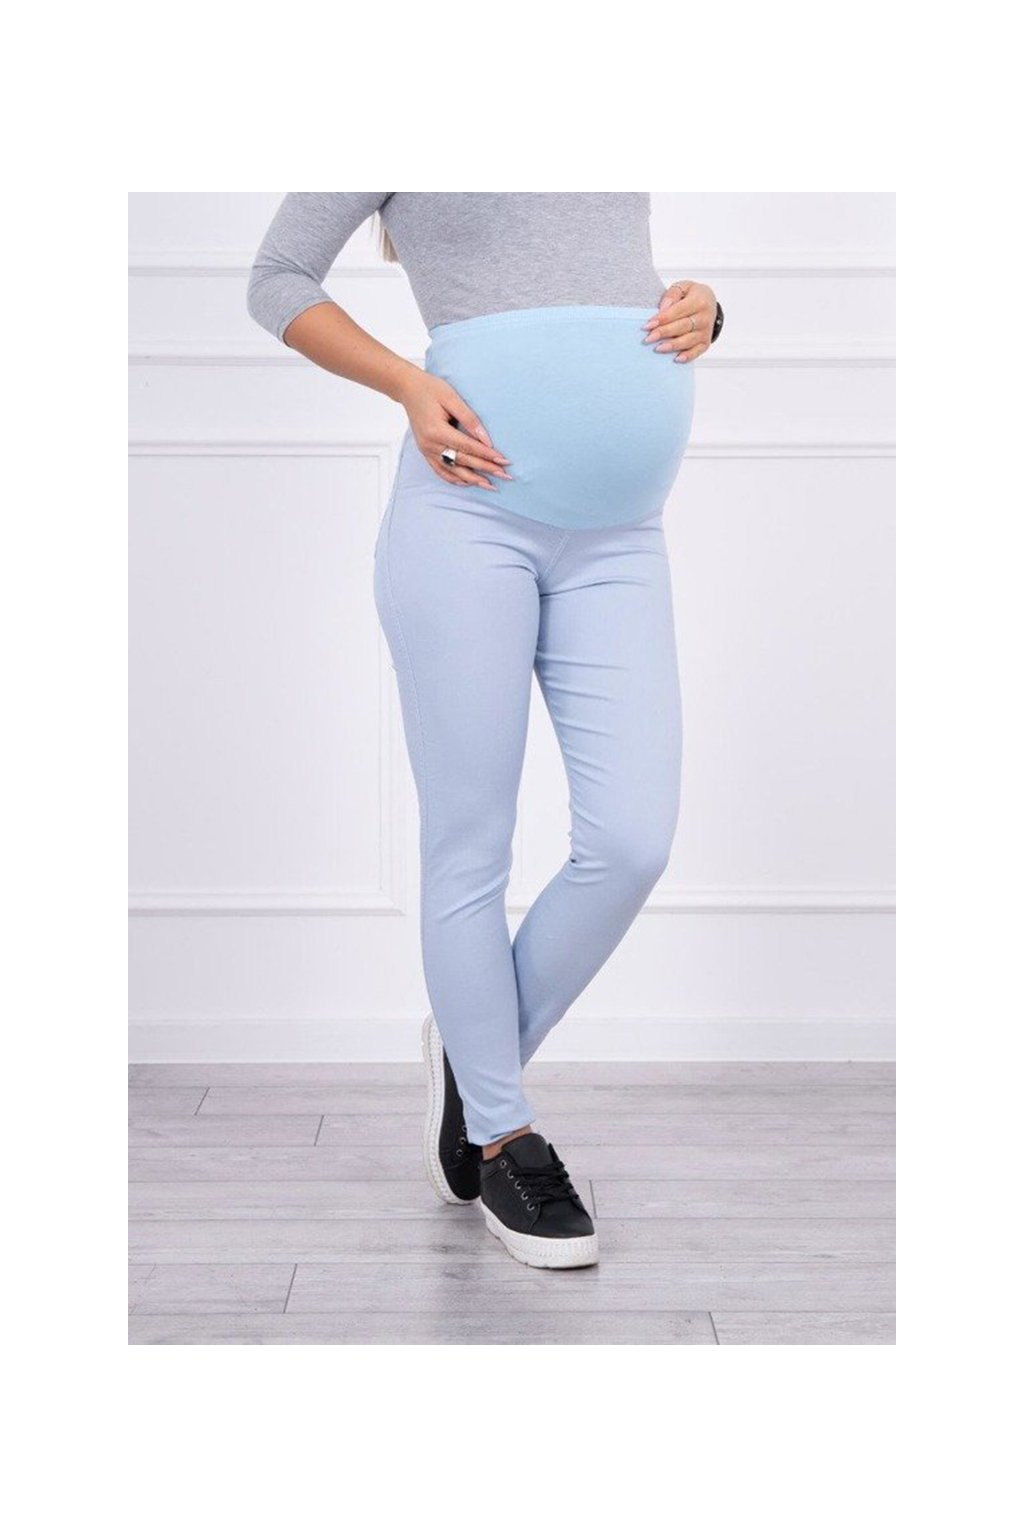 eng pm Maternity pants colored jeans blue ice 15029 3